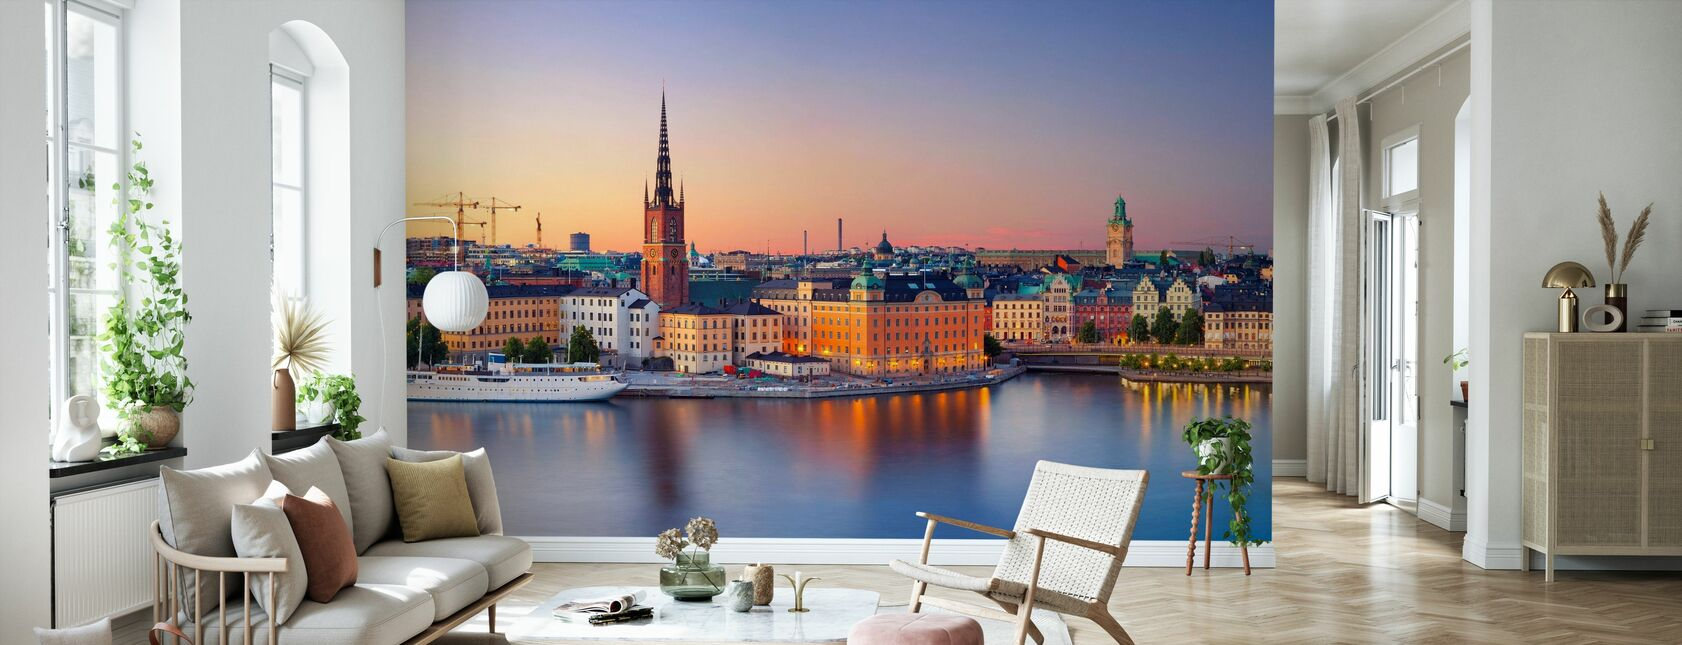 Stockholm at Dusk - Wallpaper - Living Room